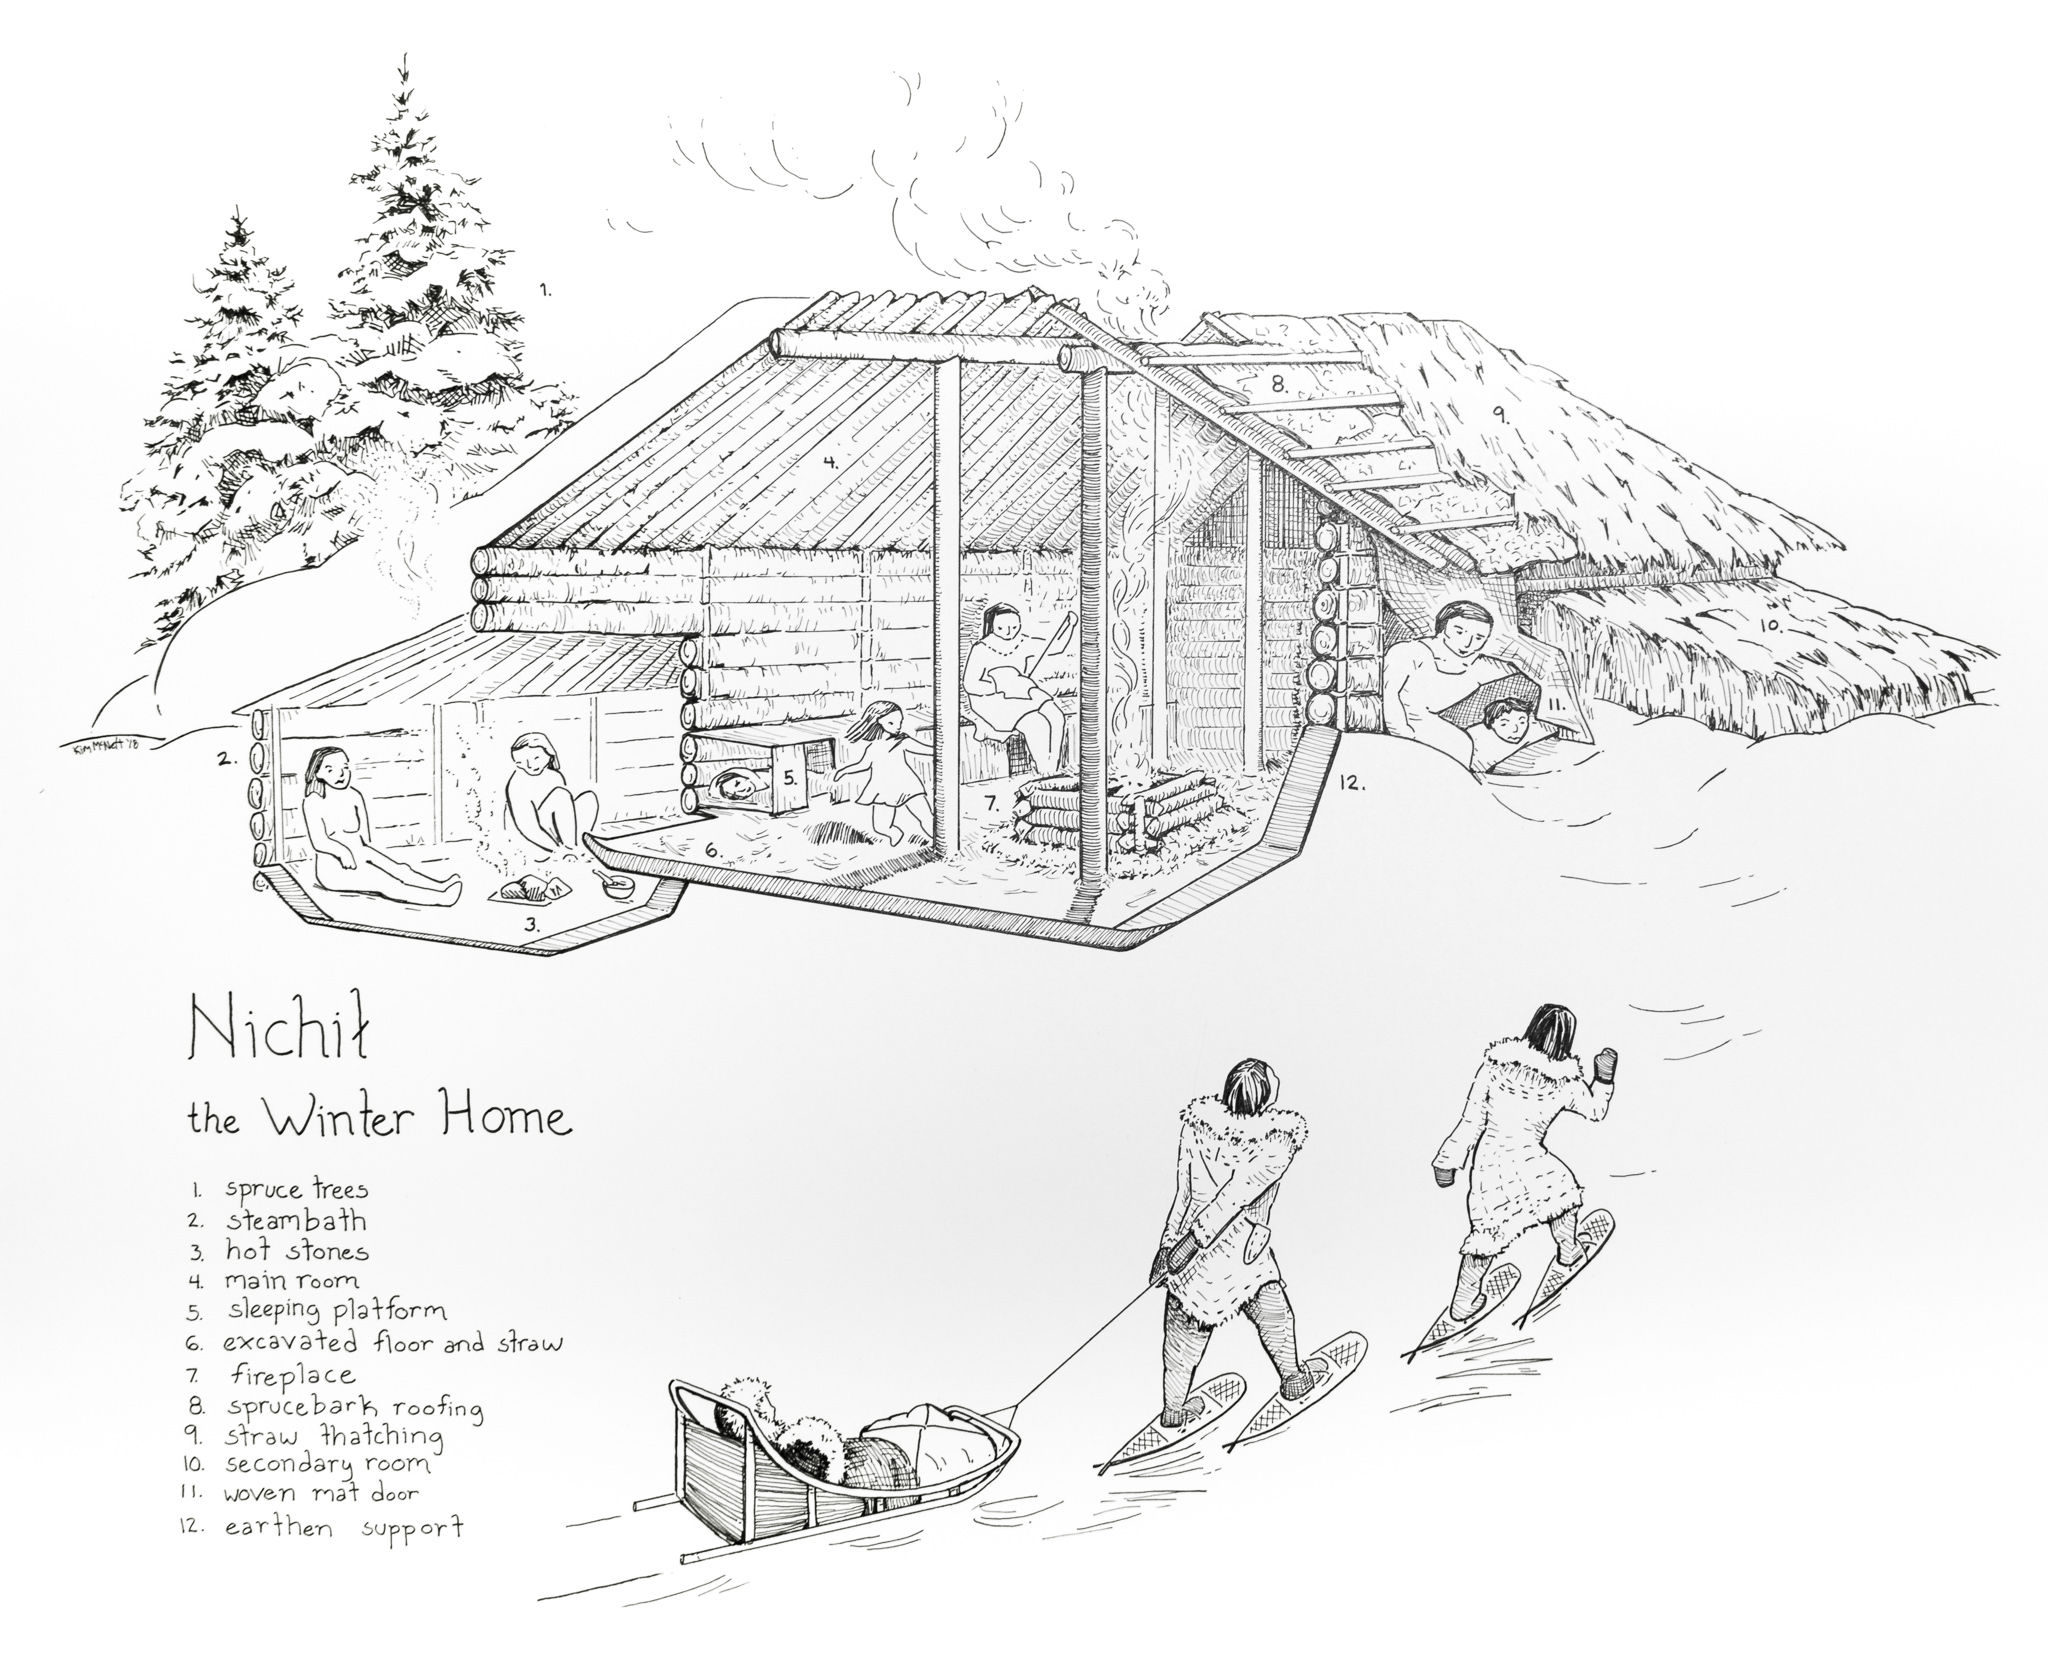 Nichil drawing, nichil, barabara, barabara drawing, Dena'ina, Dena'ina home, archeology, native house, Kenai peninsula, Kachemak Bay, China Poot Bay, Alaska